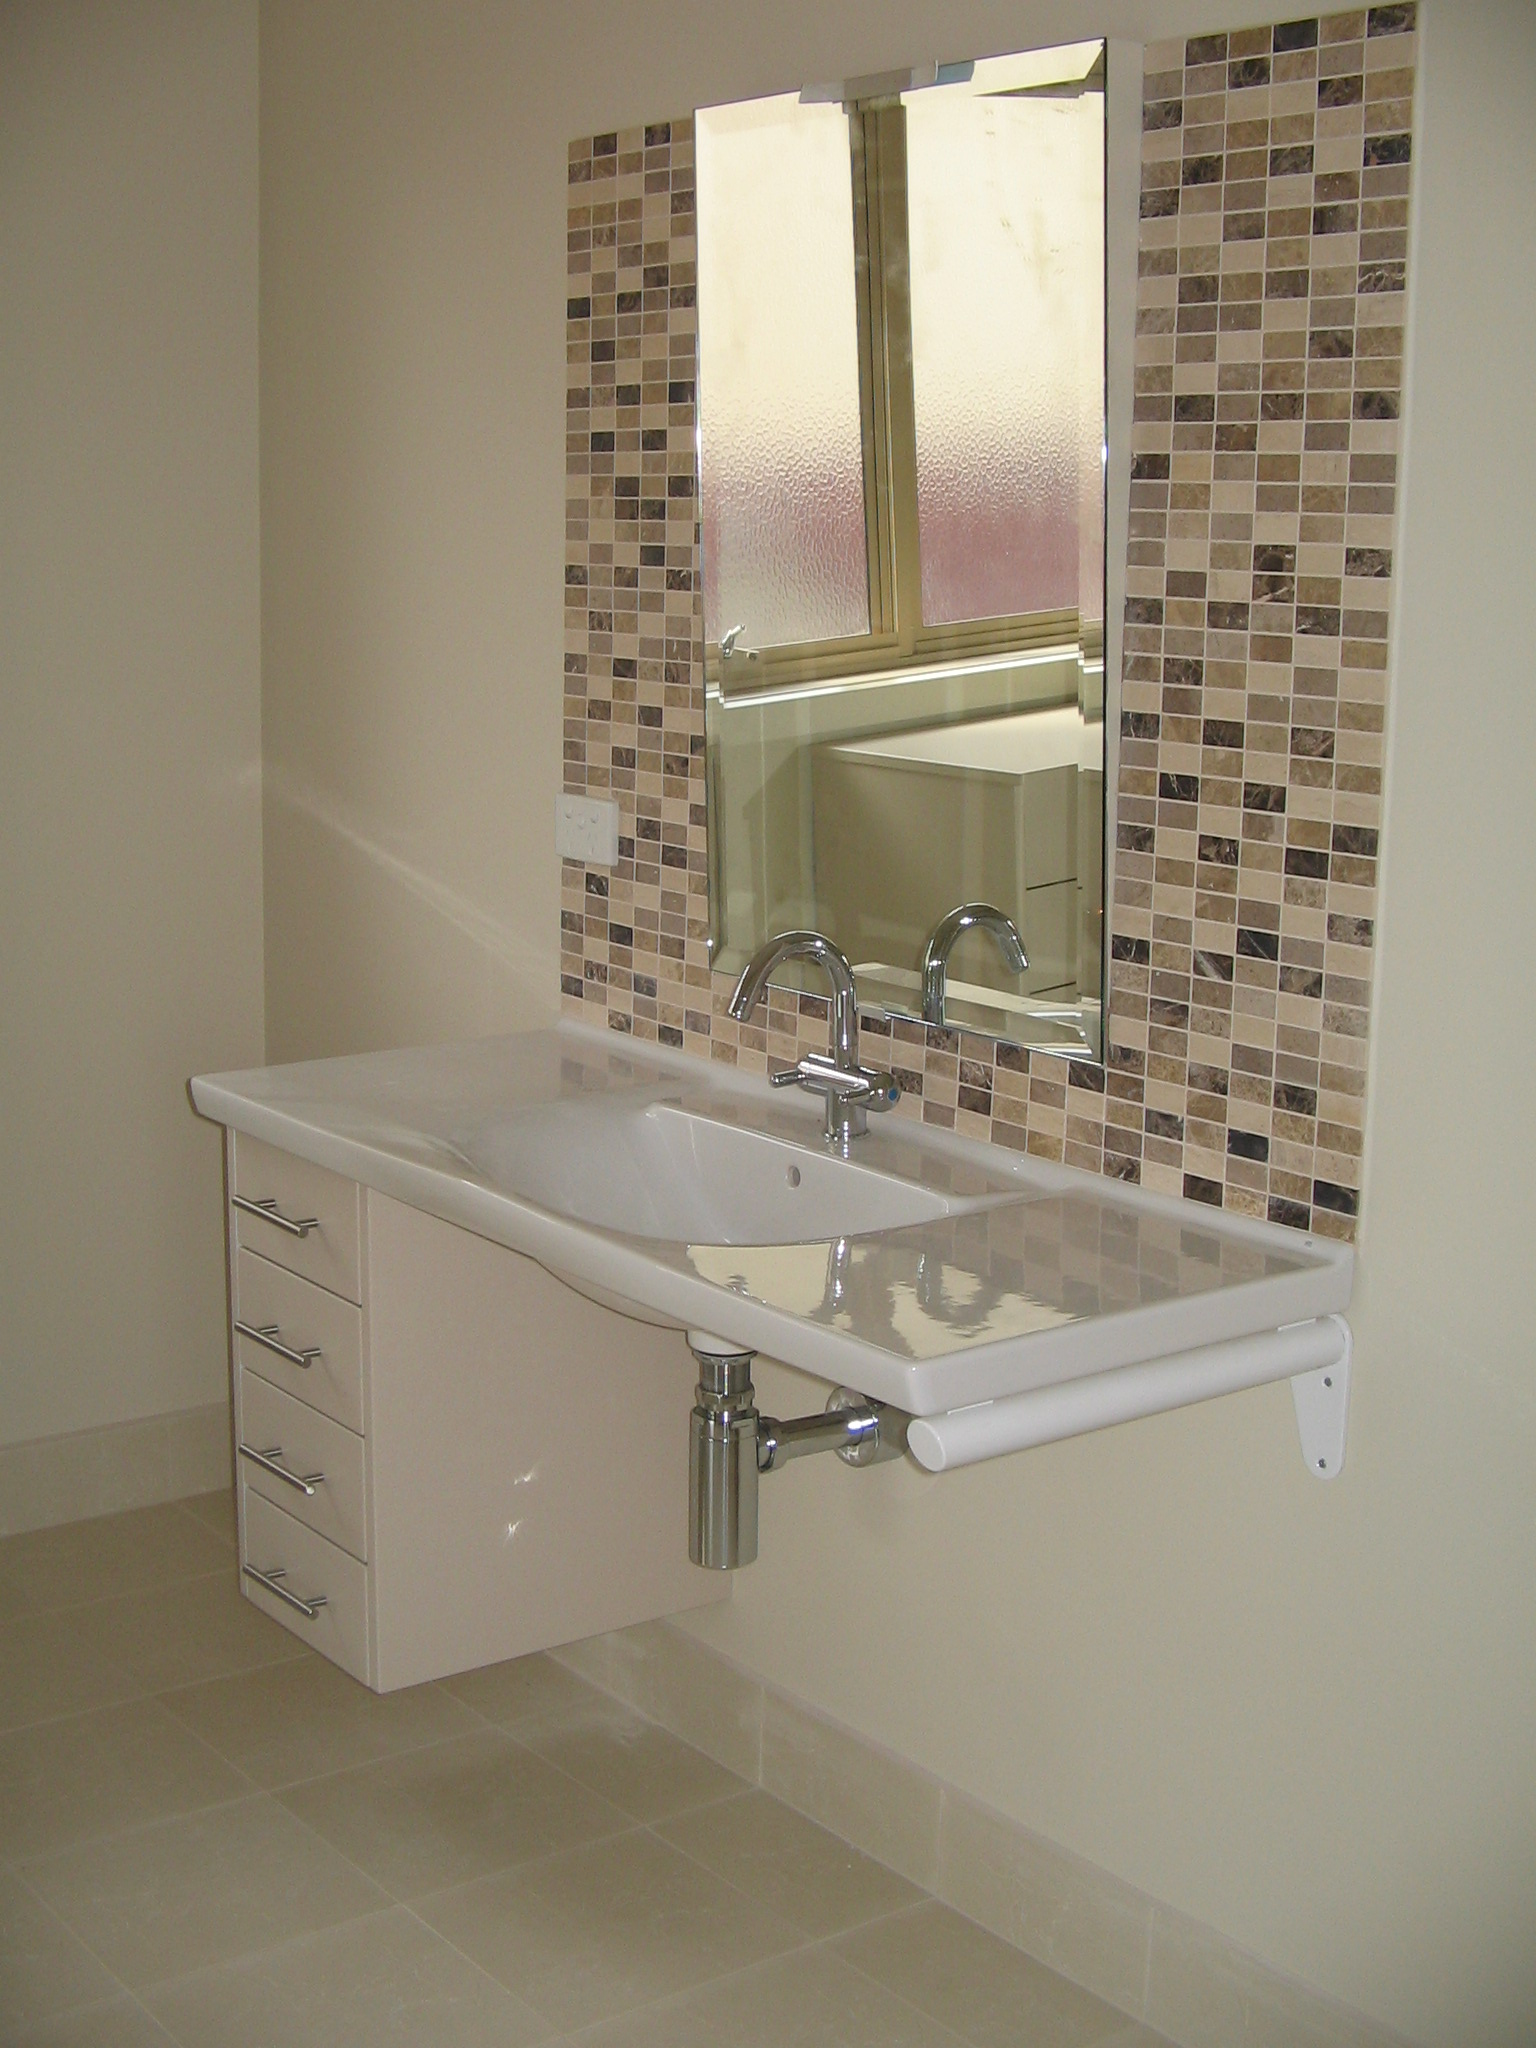 Bathroom Joinery gallery one way joinery one way mirror bathroom ~ dact